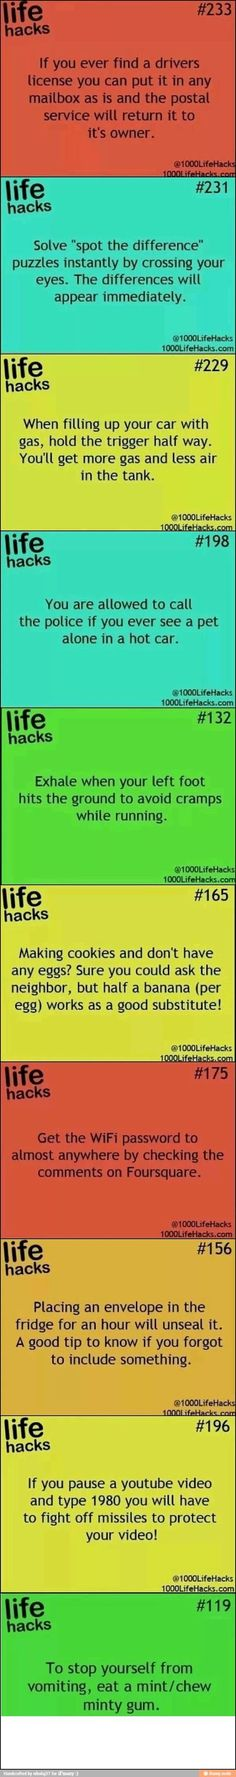 Life hacks. If only I could remember them all